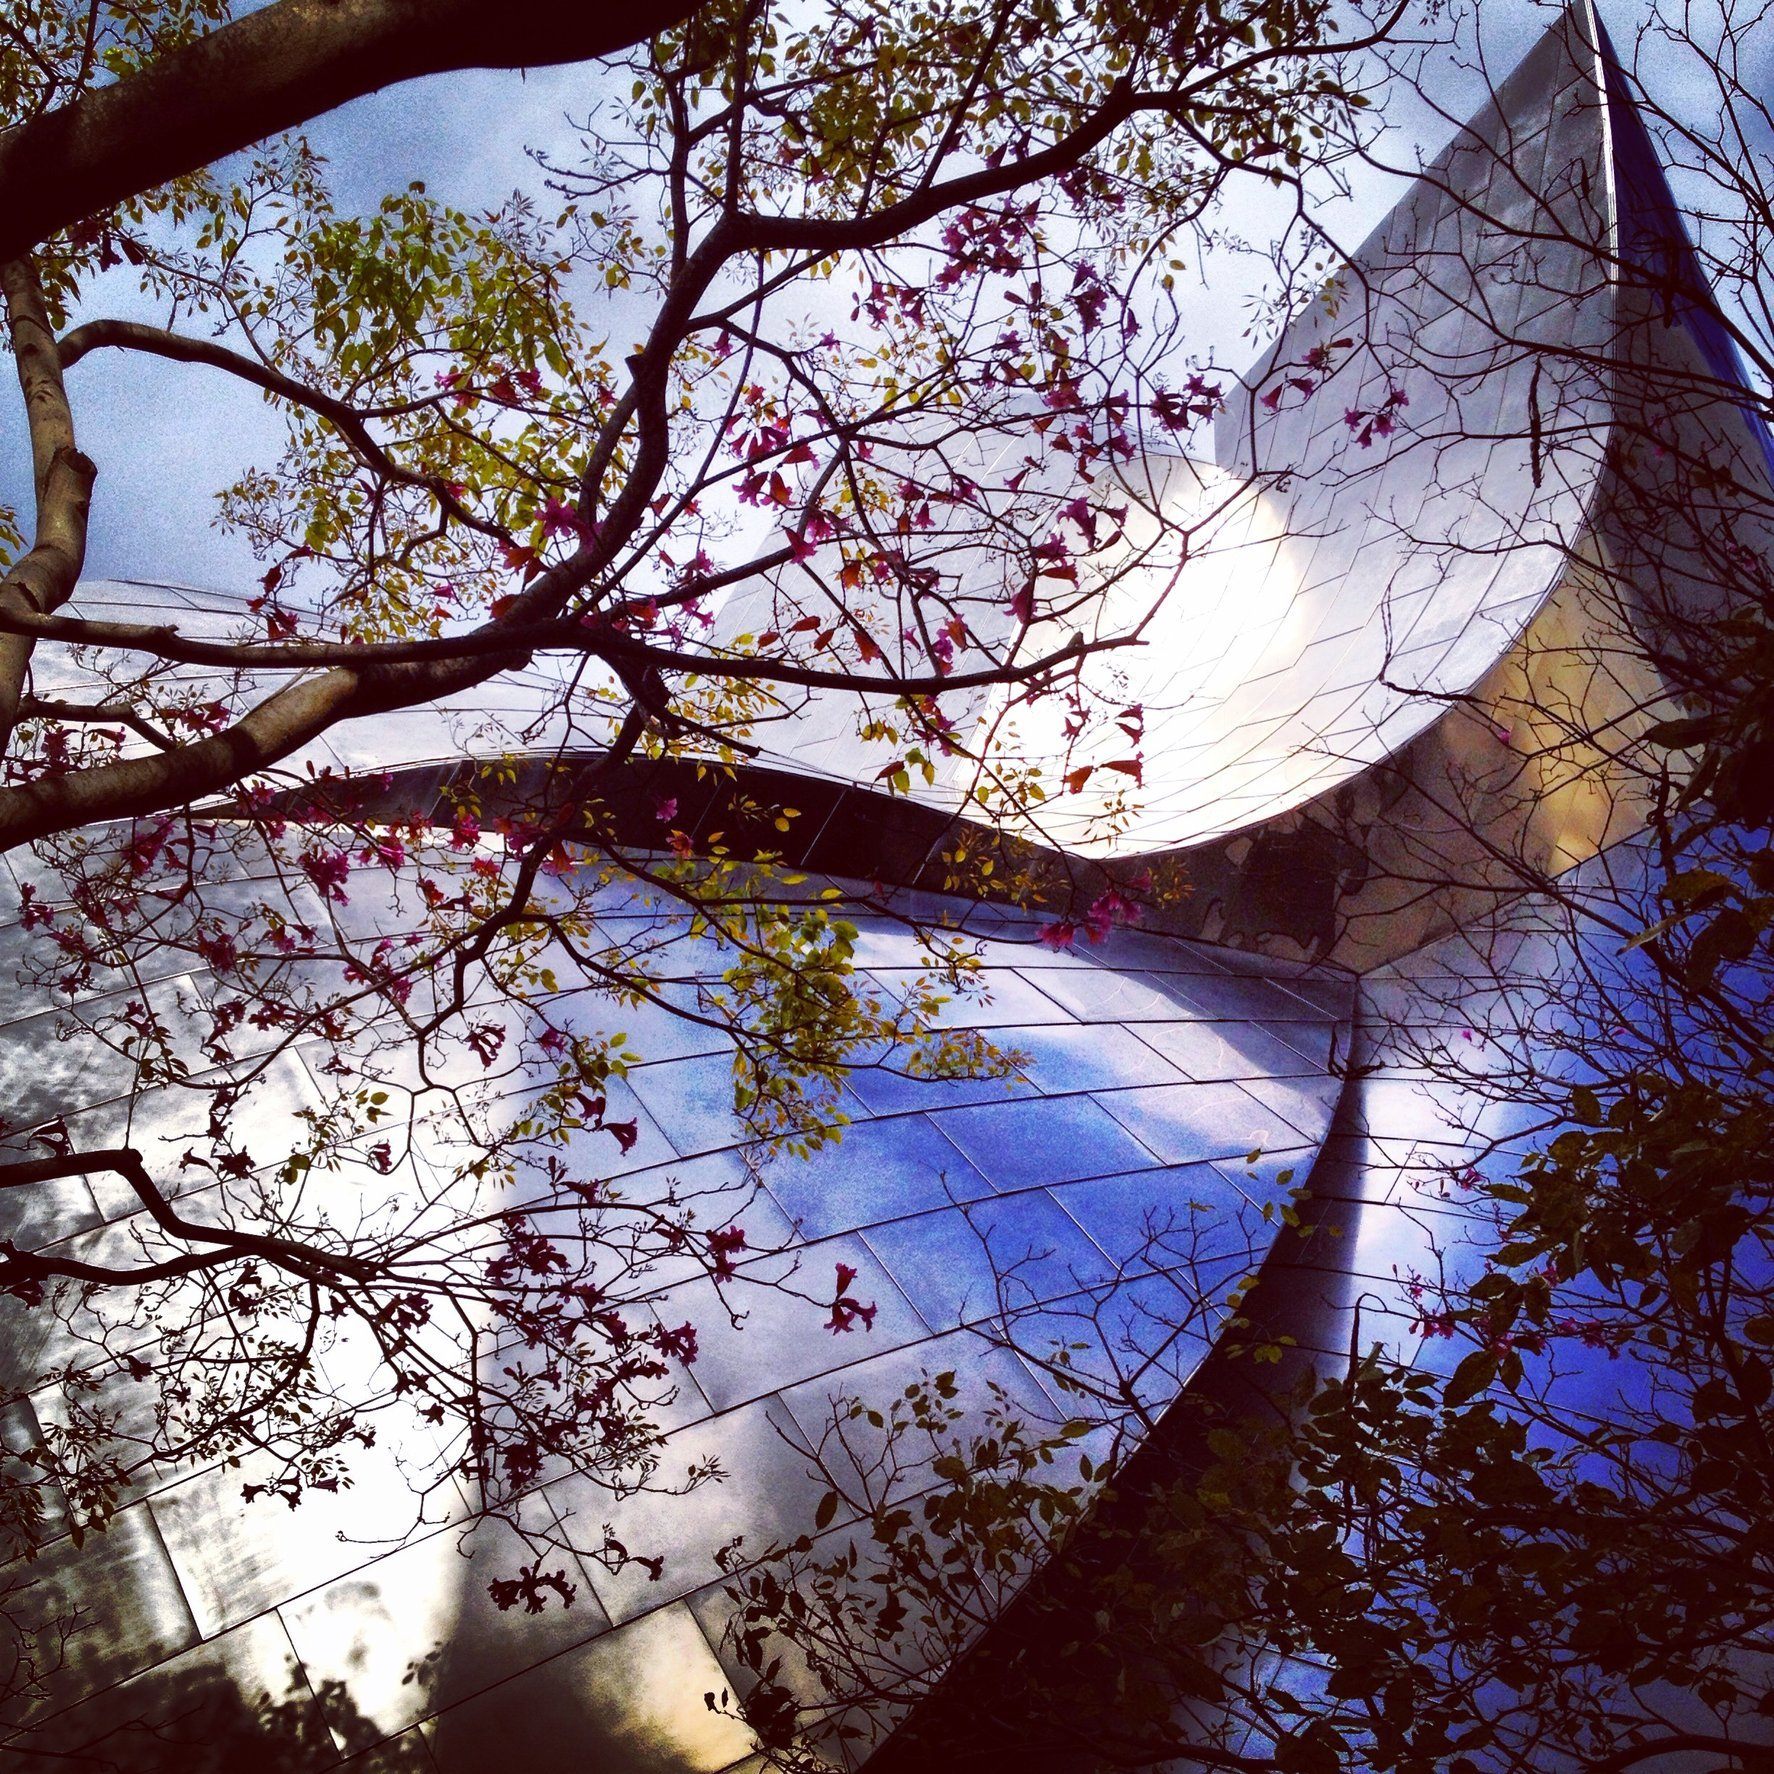 WALT DISNEY CONCERT HALL - ROSE 13